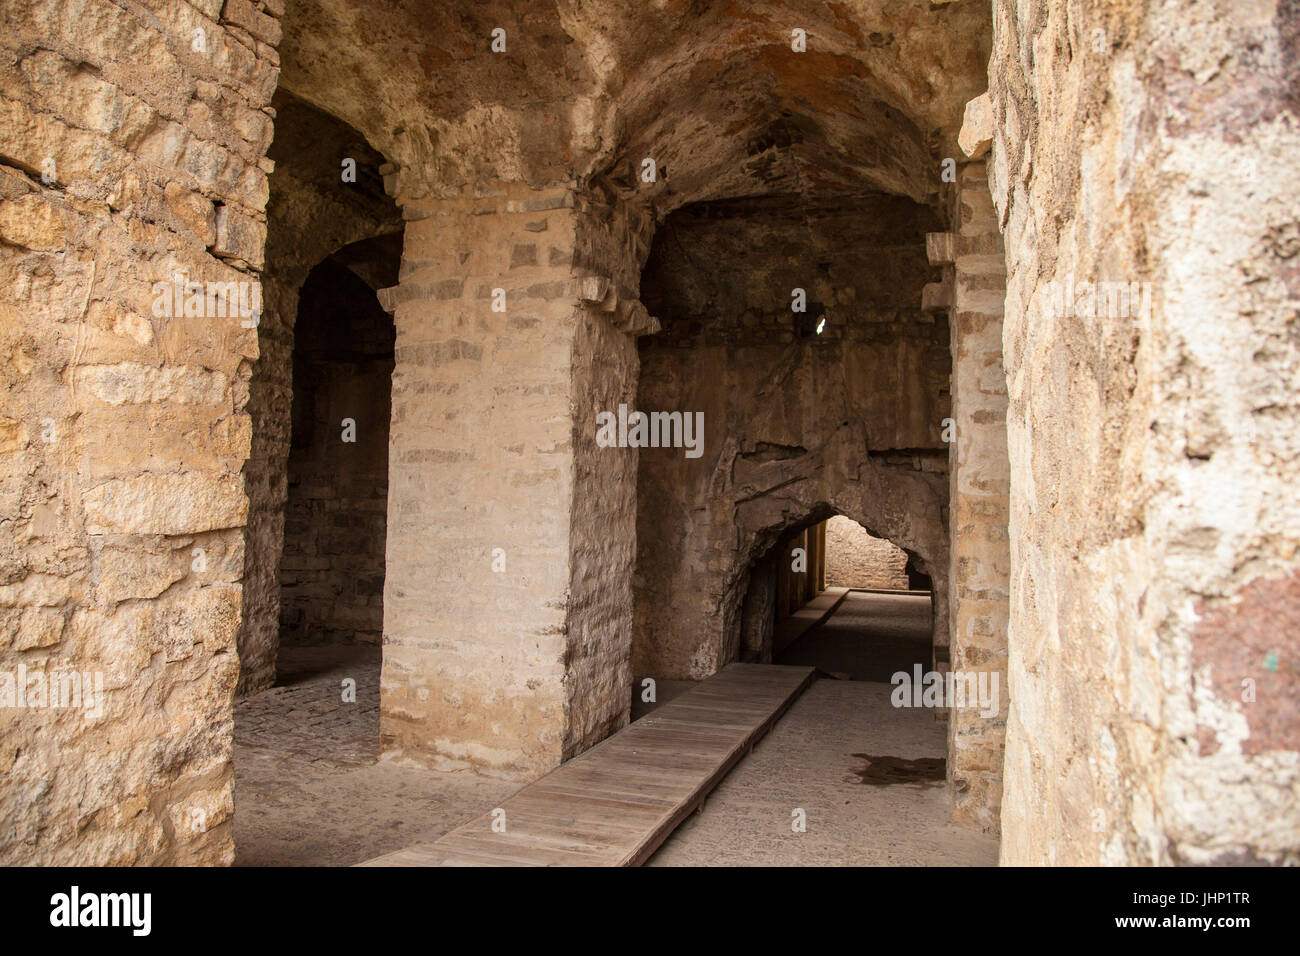 Inside the marvellous arched corridors and passages of the Golconda Fort in Hyderabad, India - Stock Image